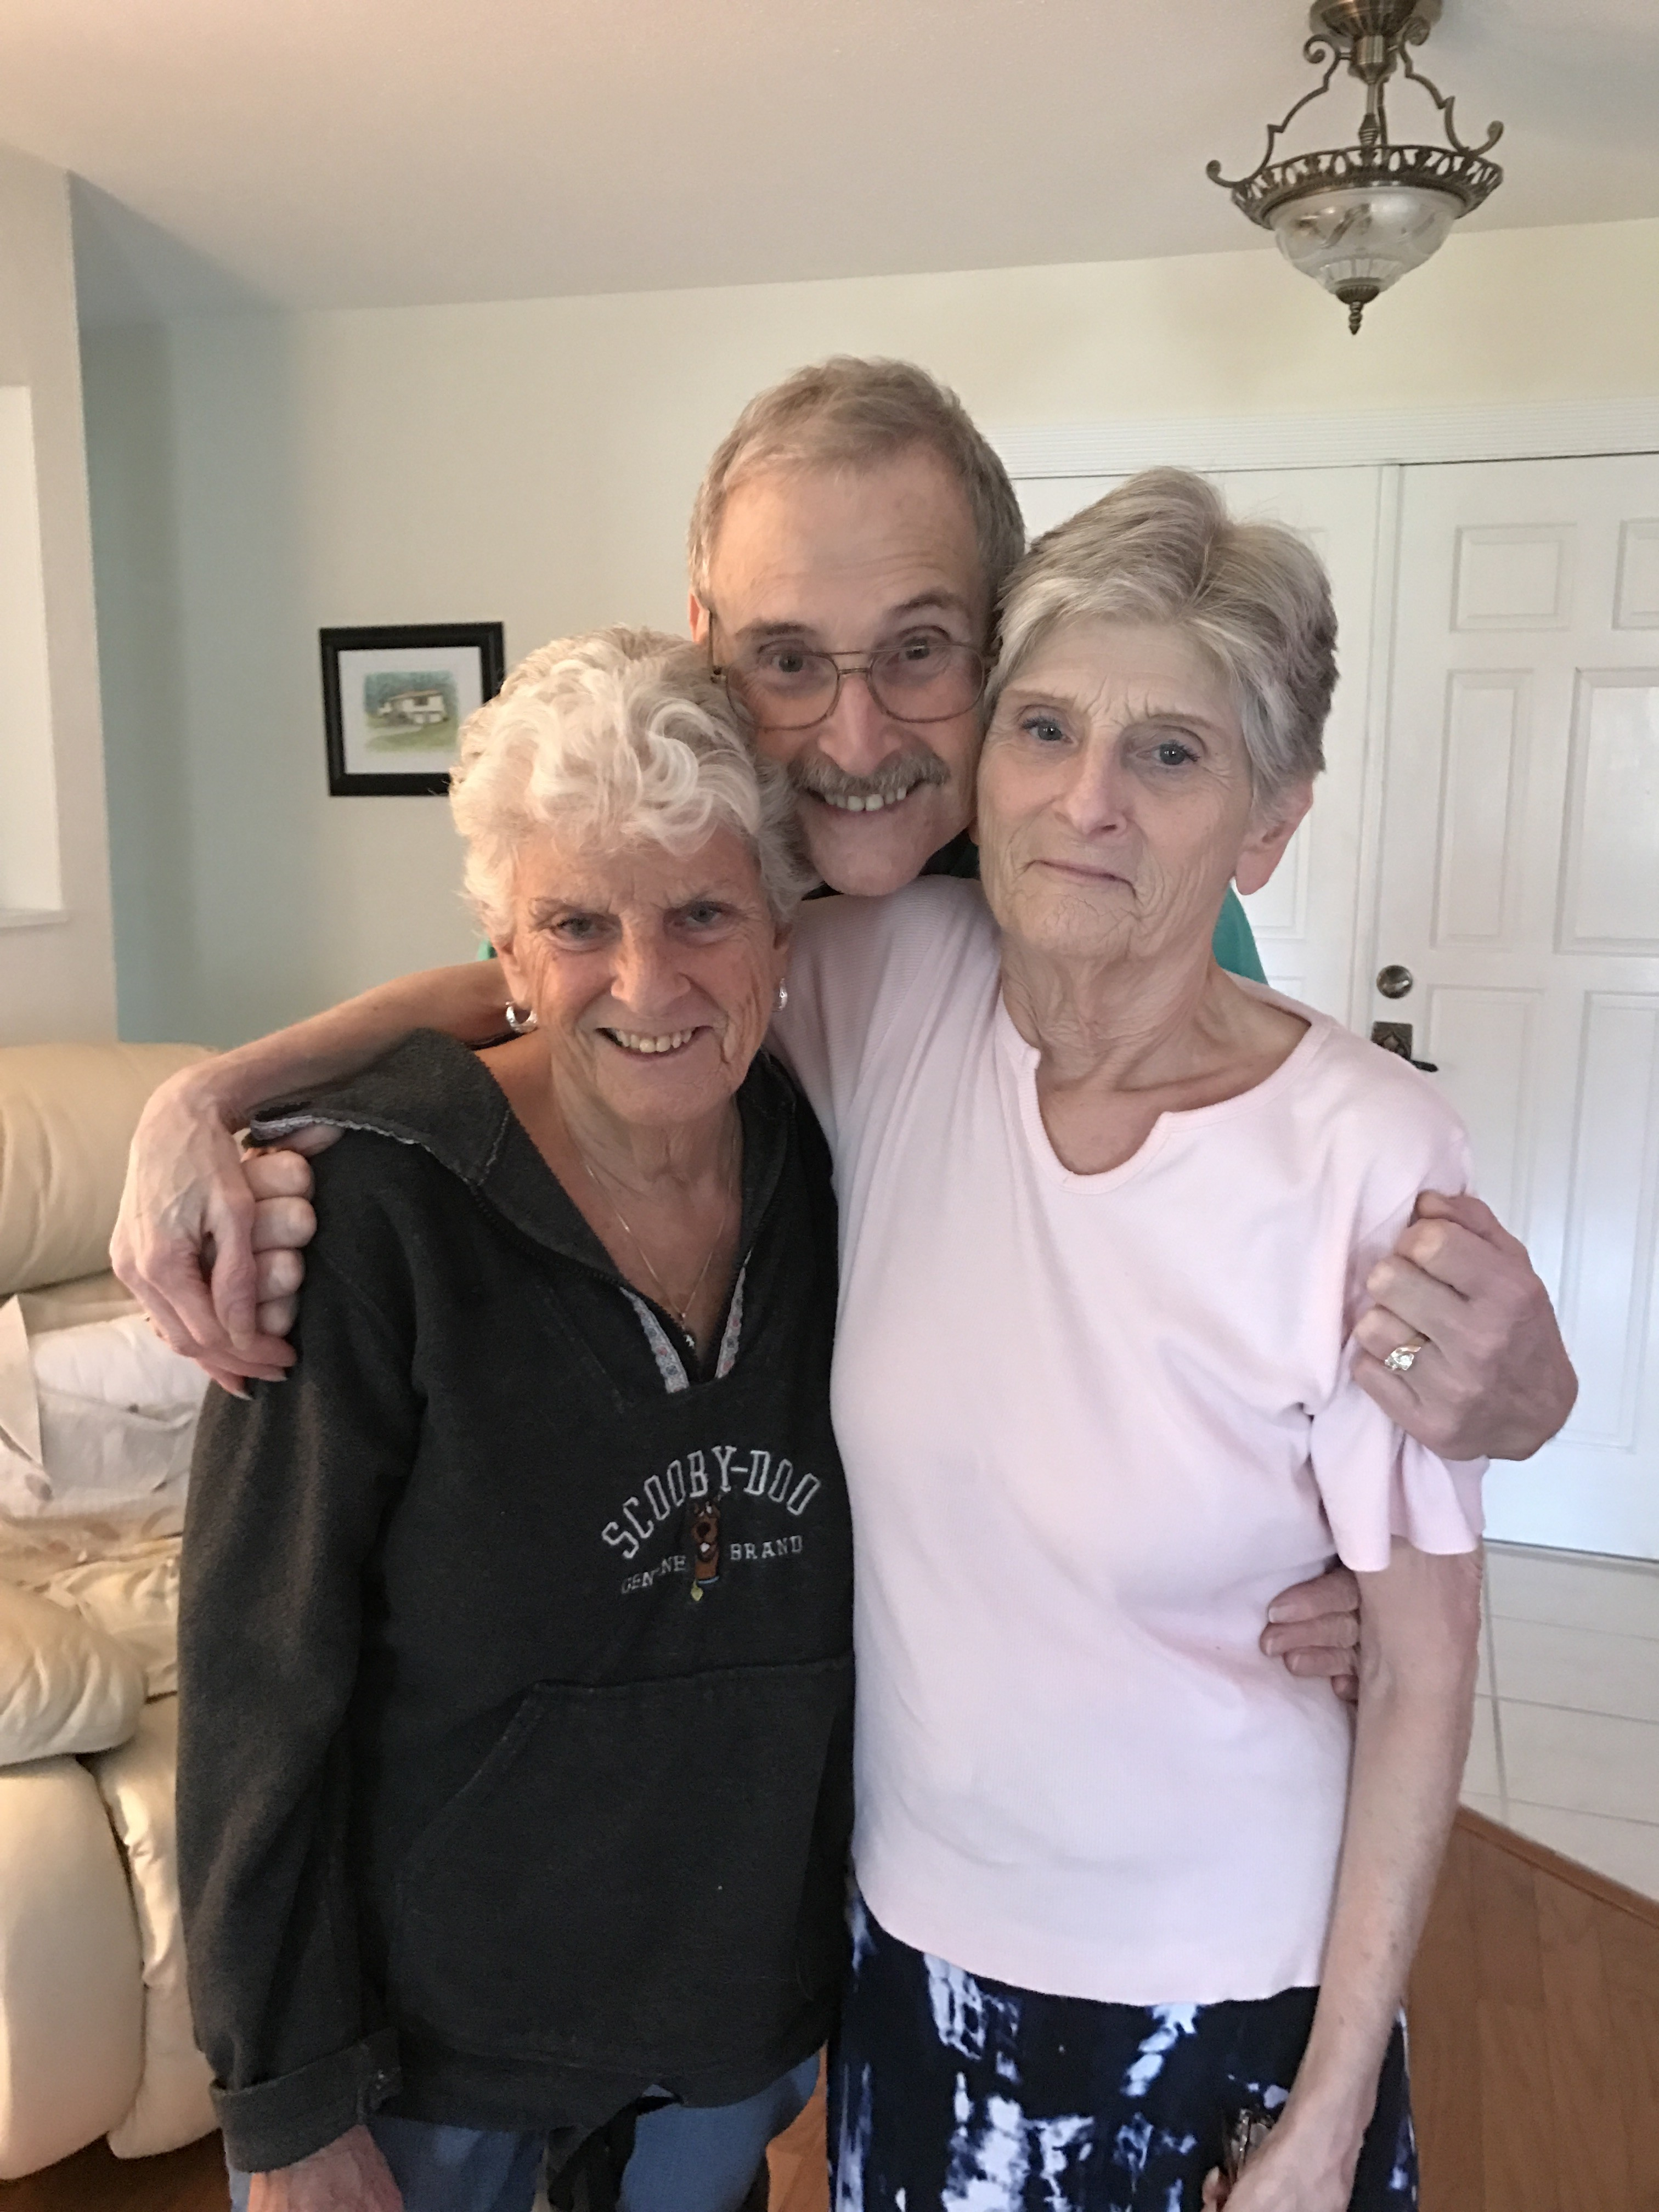 Paula with her sister and brother. They were there to support Paula and Marty in the final months of her life